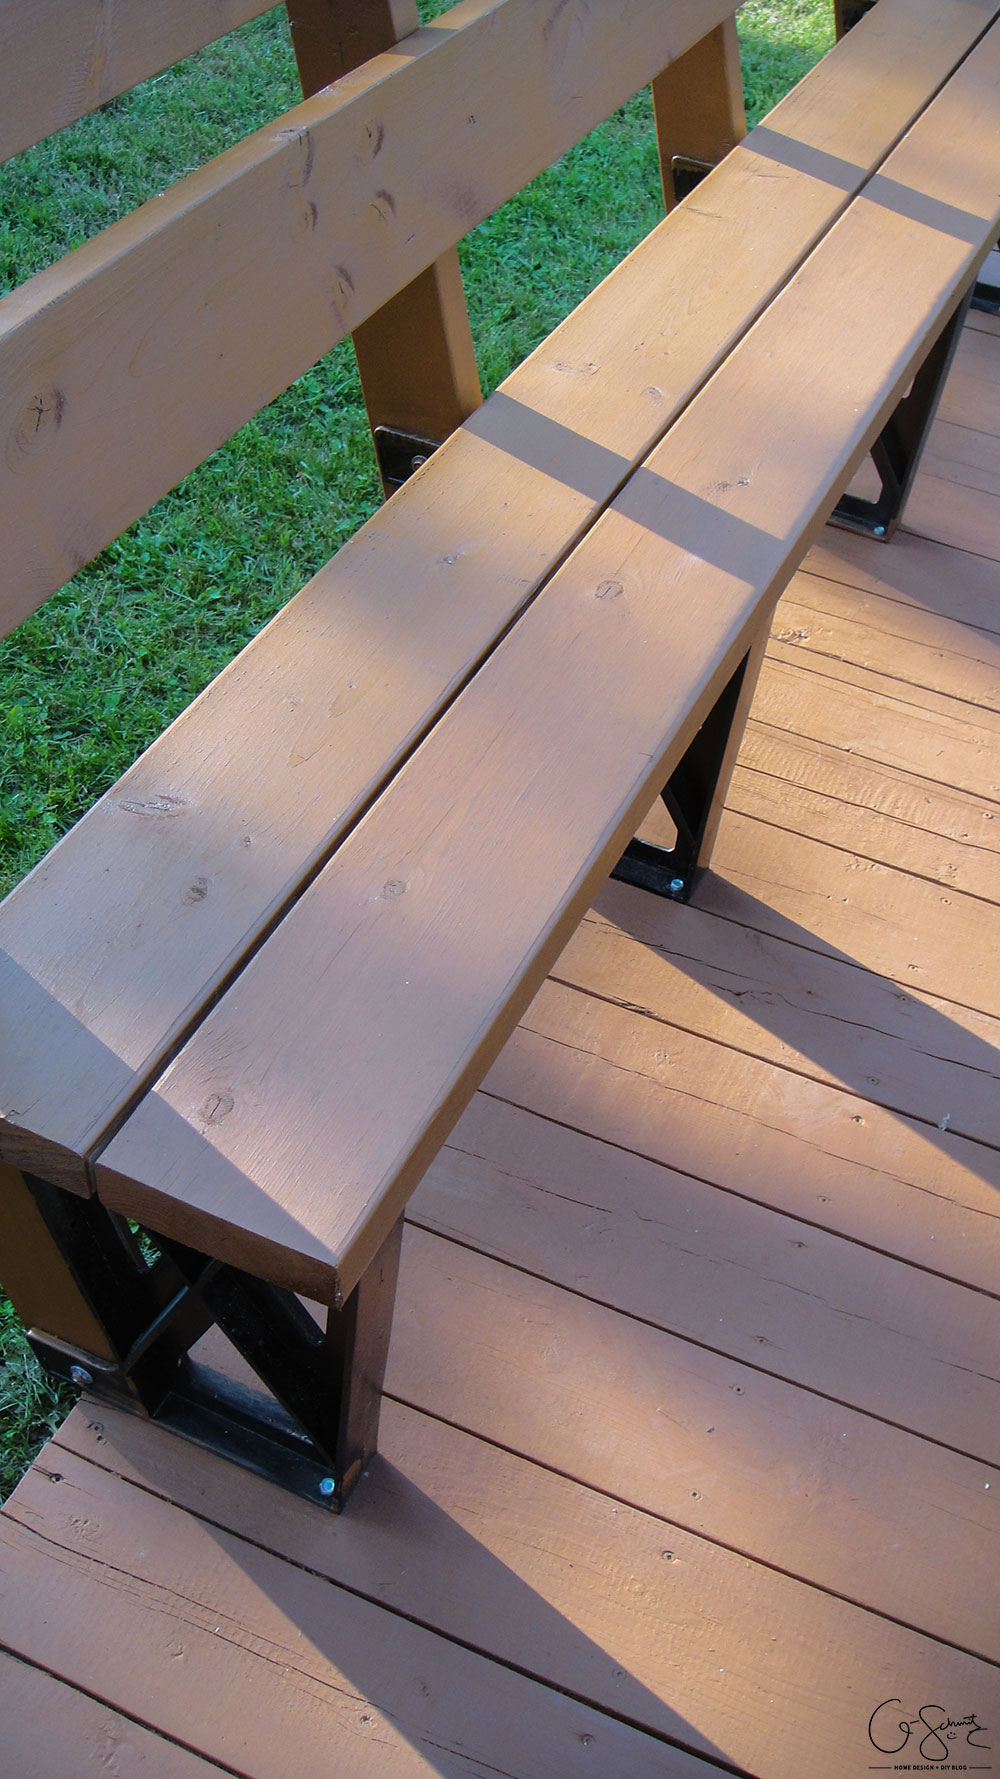 Staining the deck is an easy DIY project, but it is time consuming! Check out all the photos of the progress and read about the details on how to stain different angles. I can't wait to host some great backyard barbecue parties!